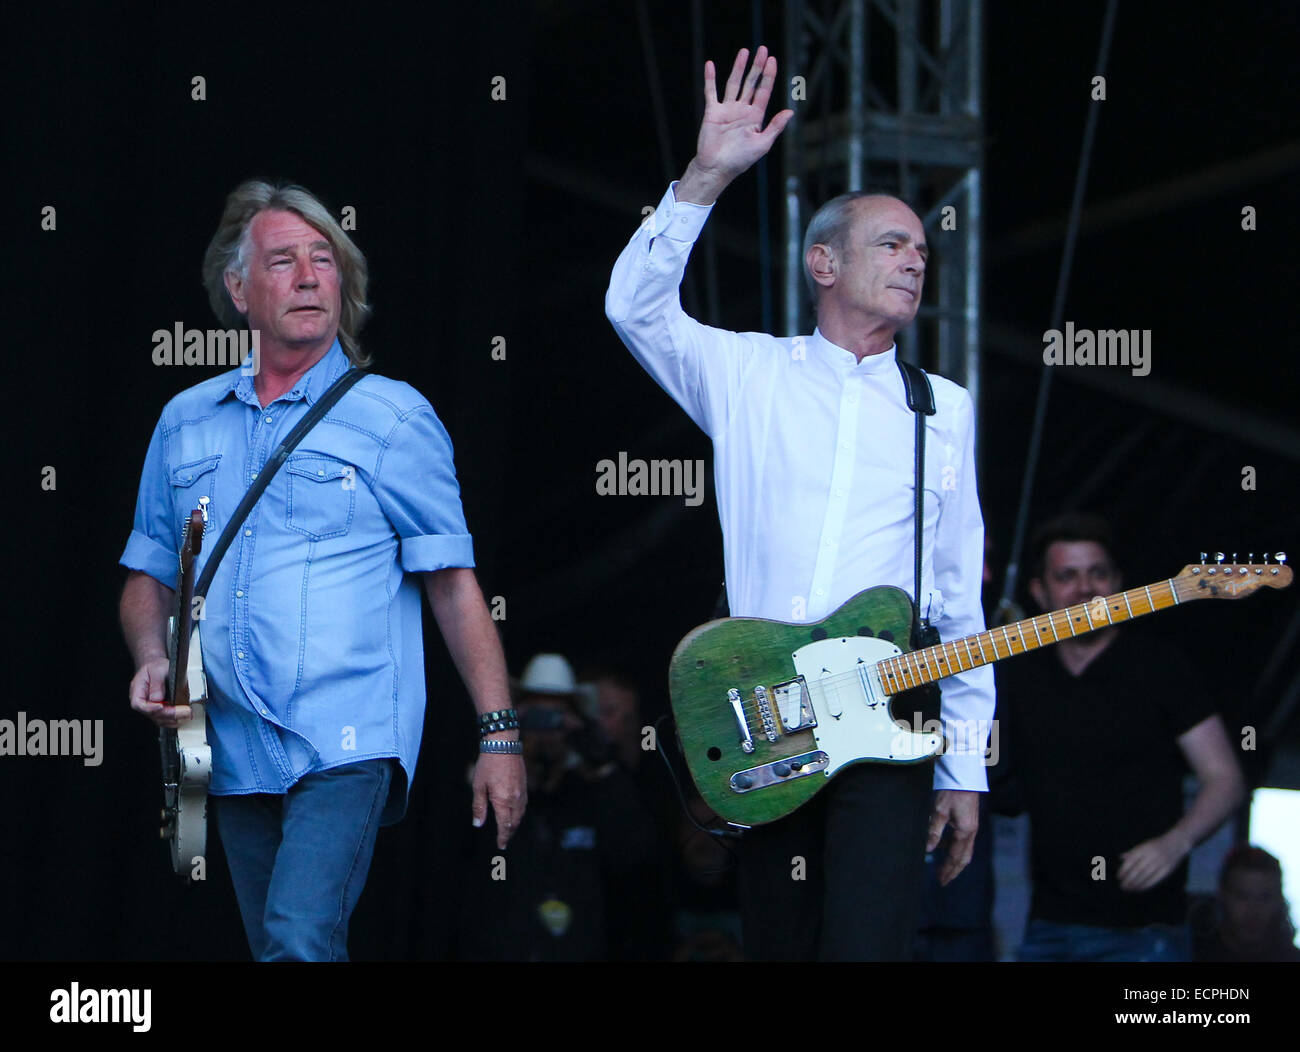 Status quo: whatever you want @ download festival 2014 youtube.